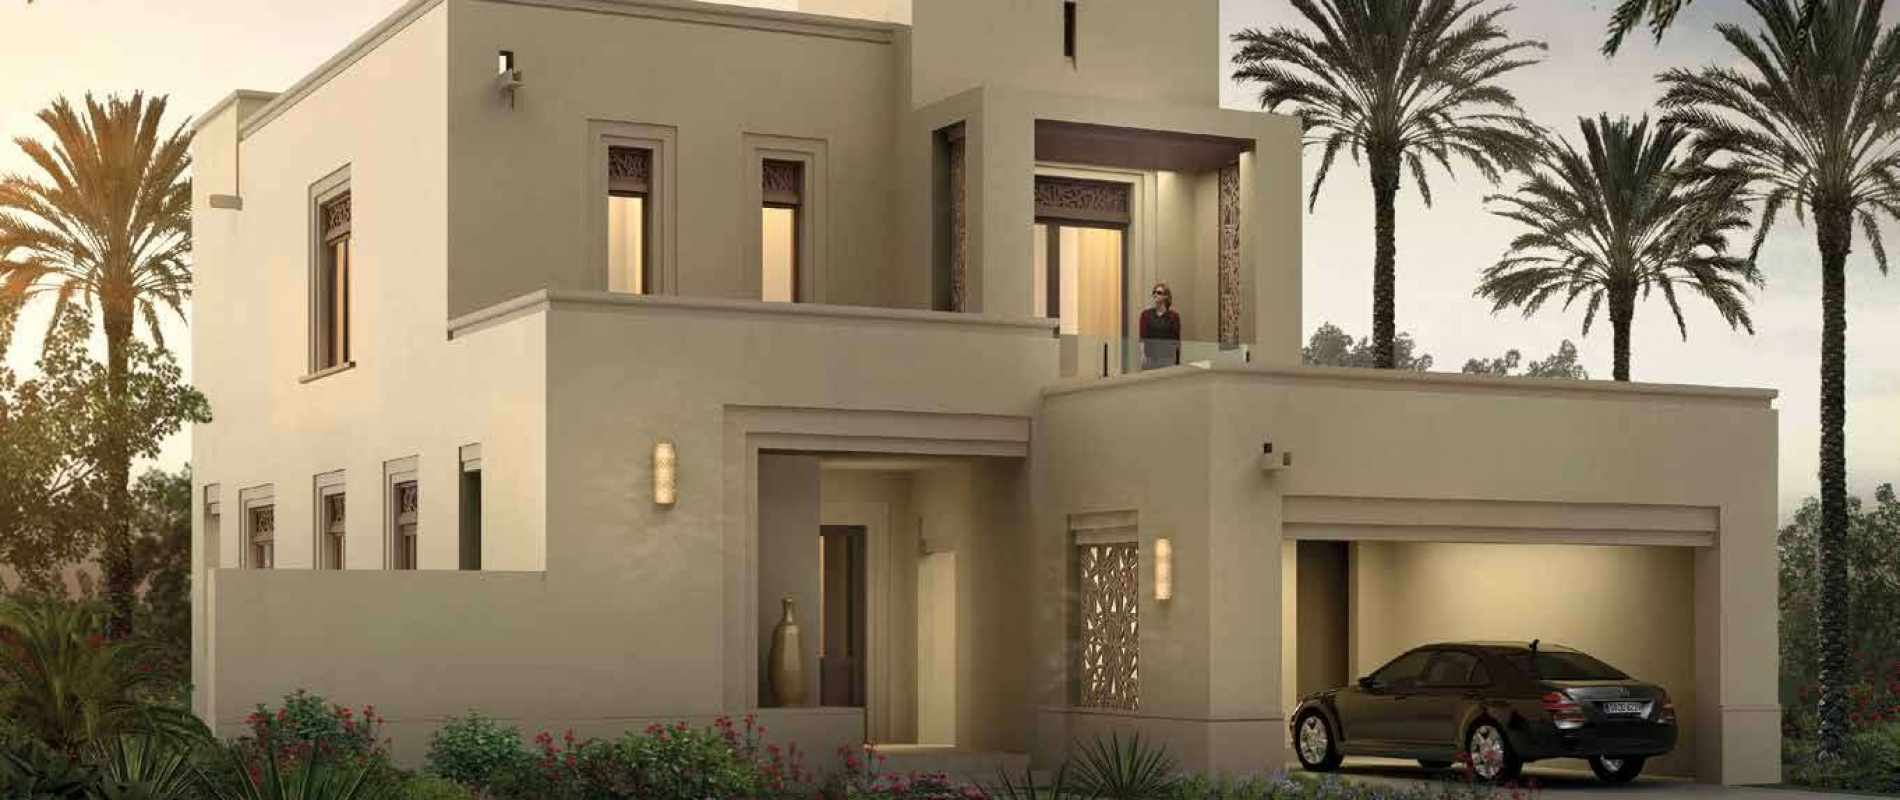 Luxury Property Dubai  - Property for sale in Azalea Arabian Ranches 2